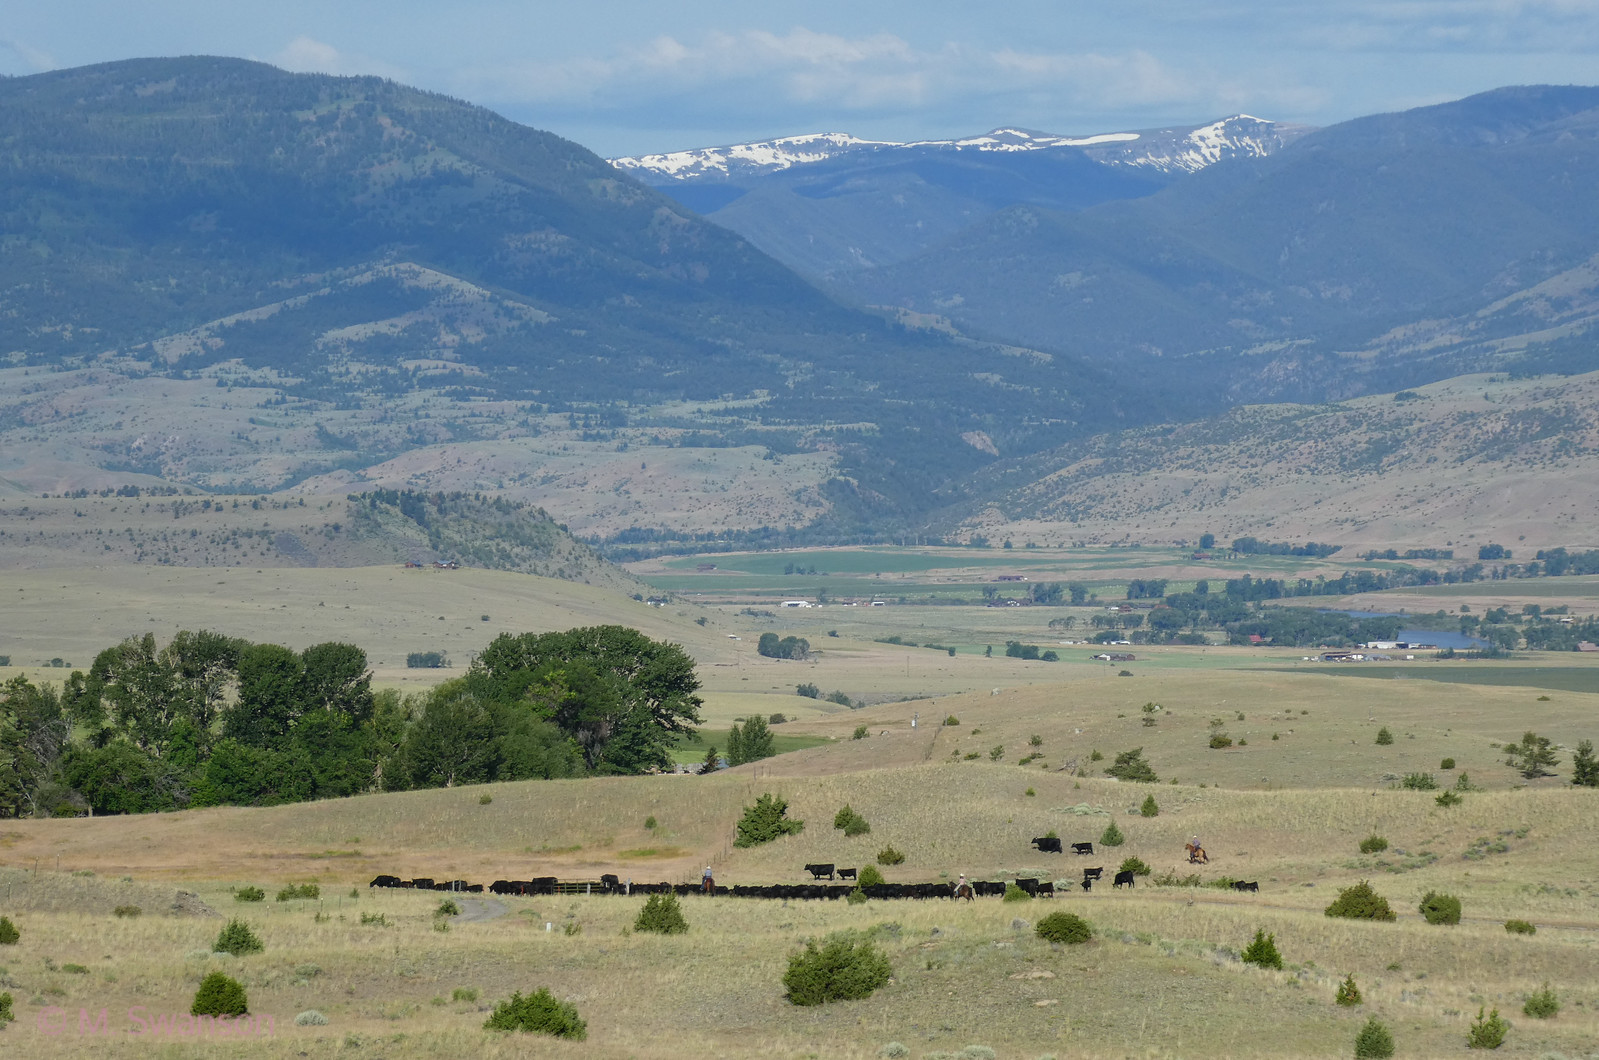 6/28:  Tis the time for cattle to move to those no-longer-so-pristine high meadows.  They will graze on USFS land until sometime in the fall.